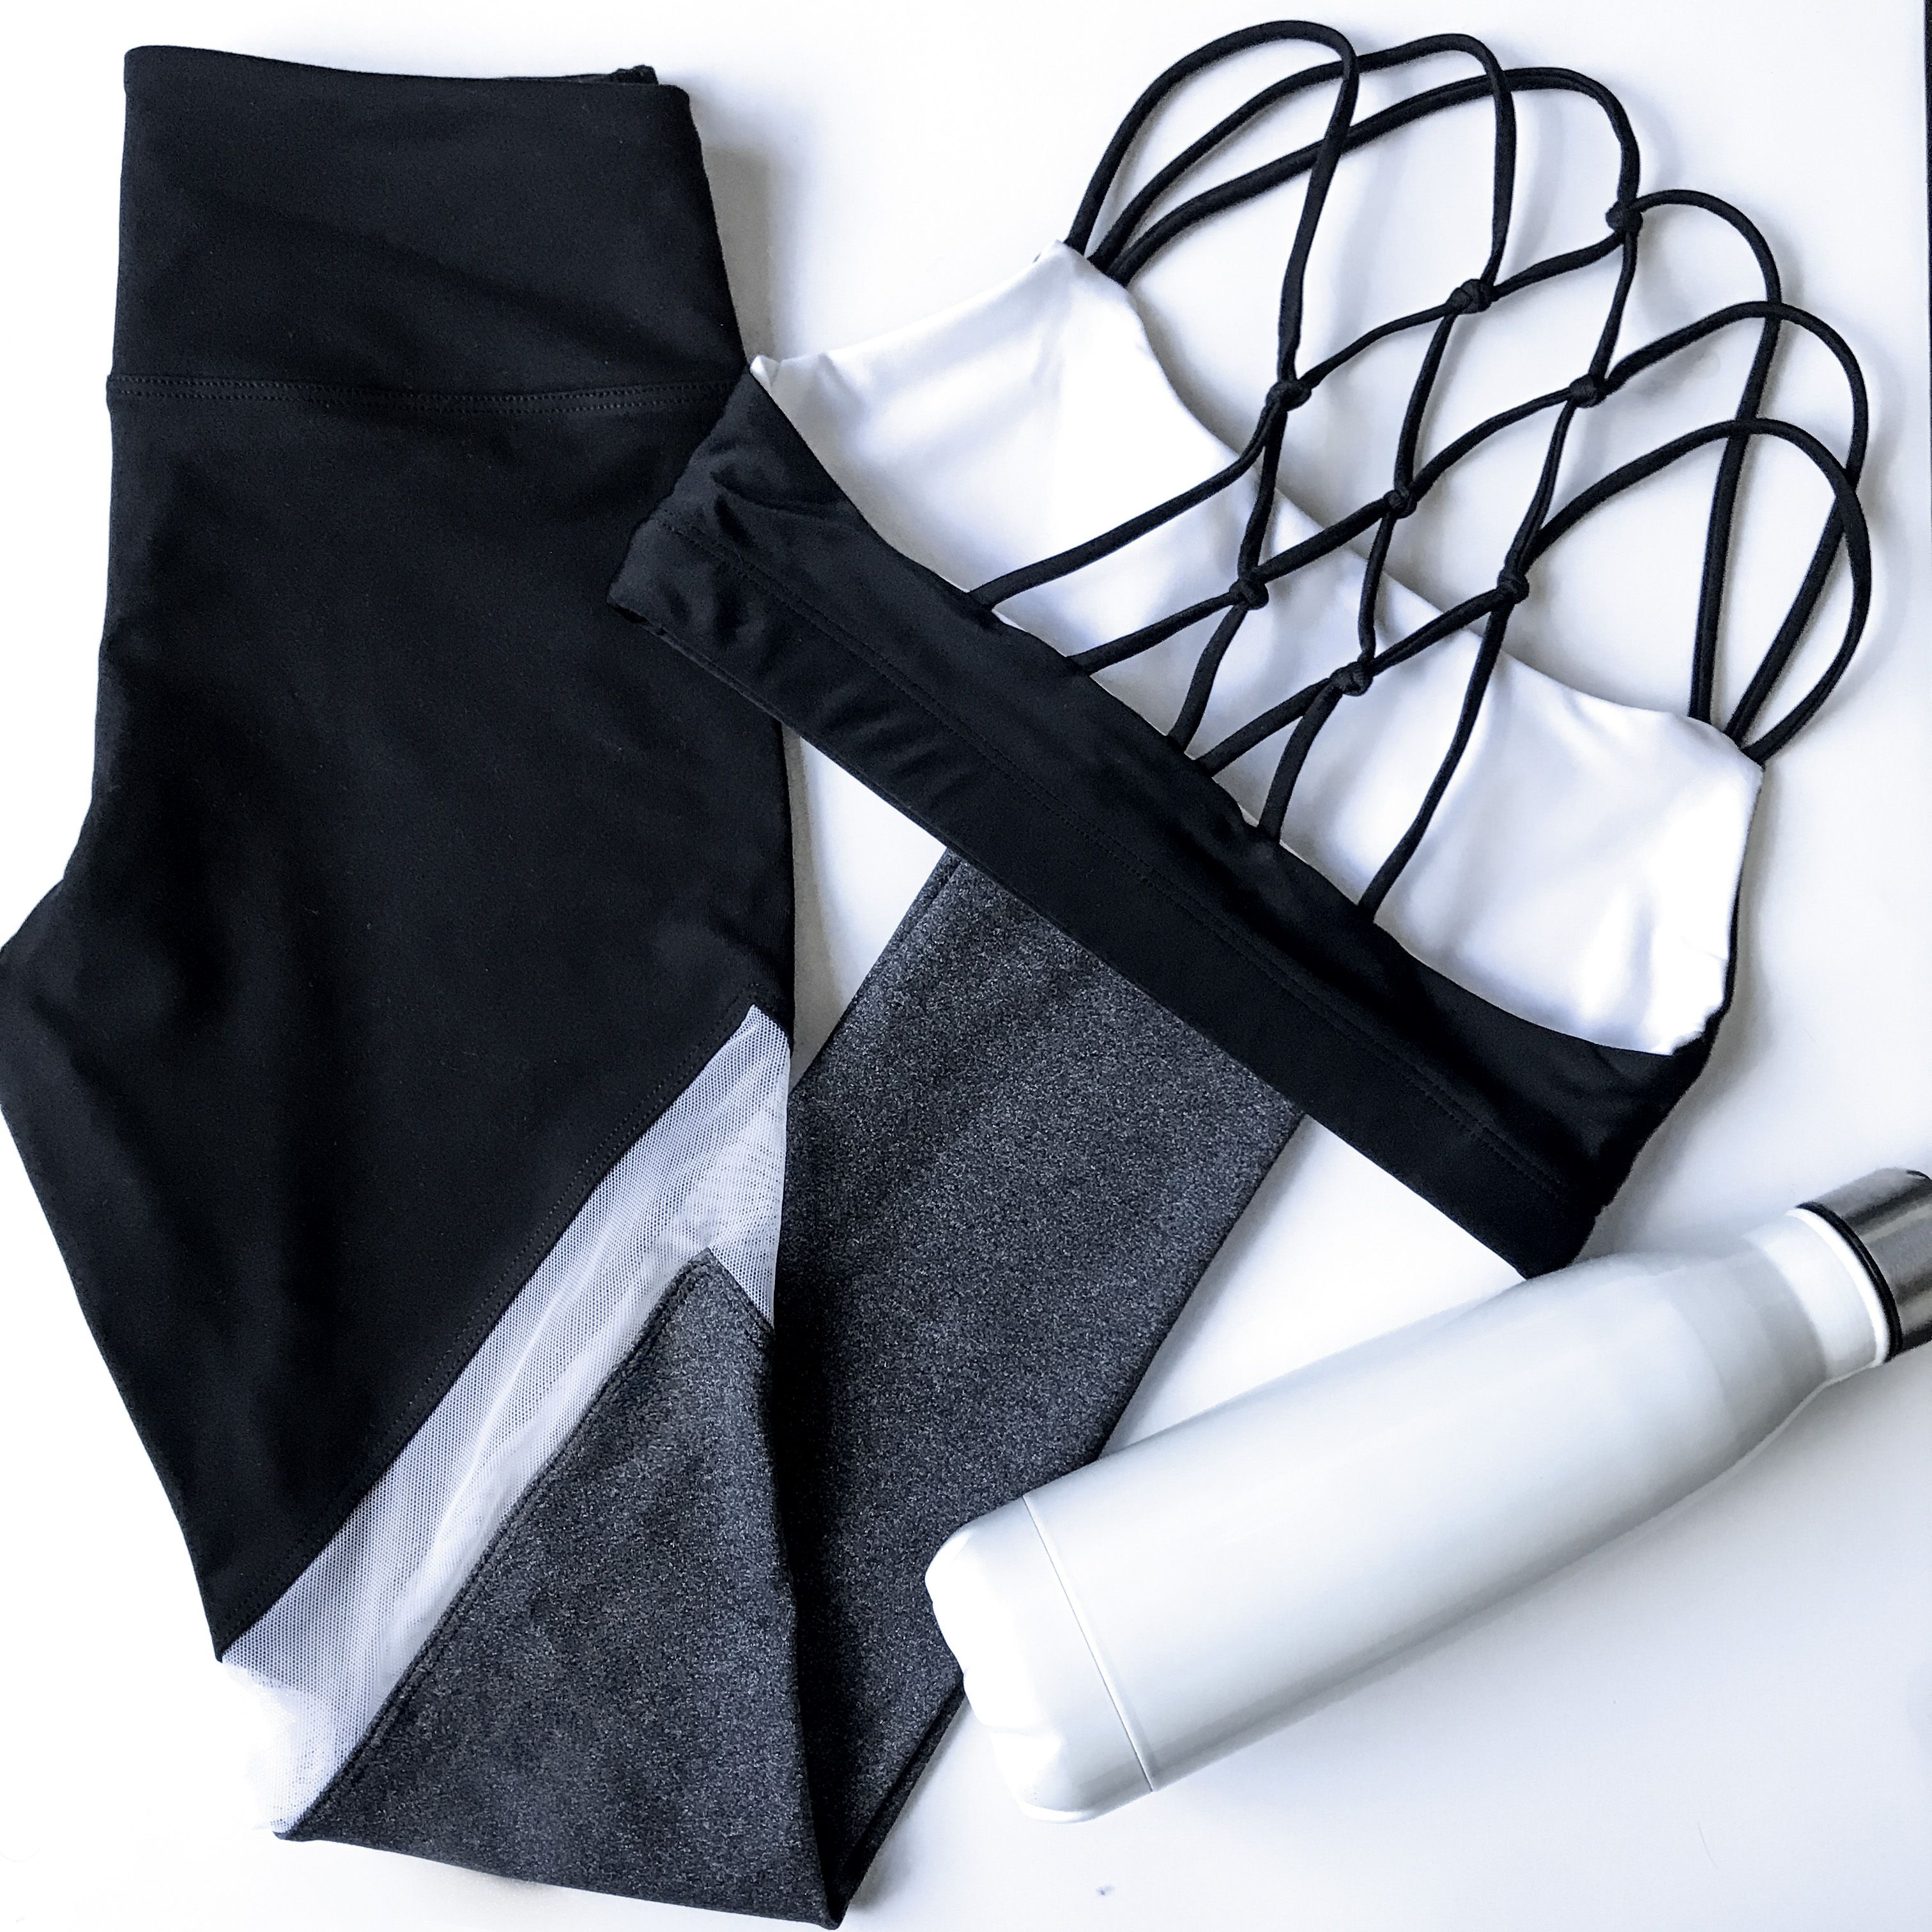 57217a9a1d Reversible black and white sports bra with strappy back detail. Matching  black and grey leggings